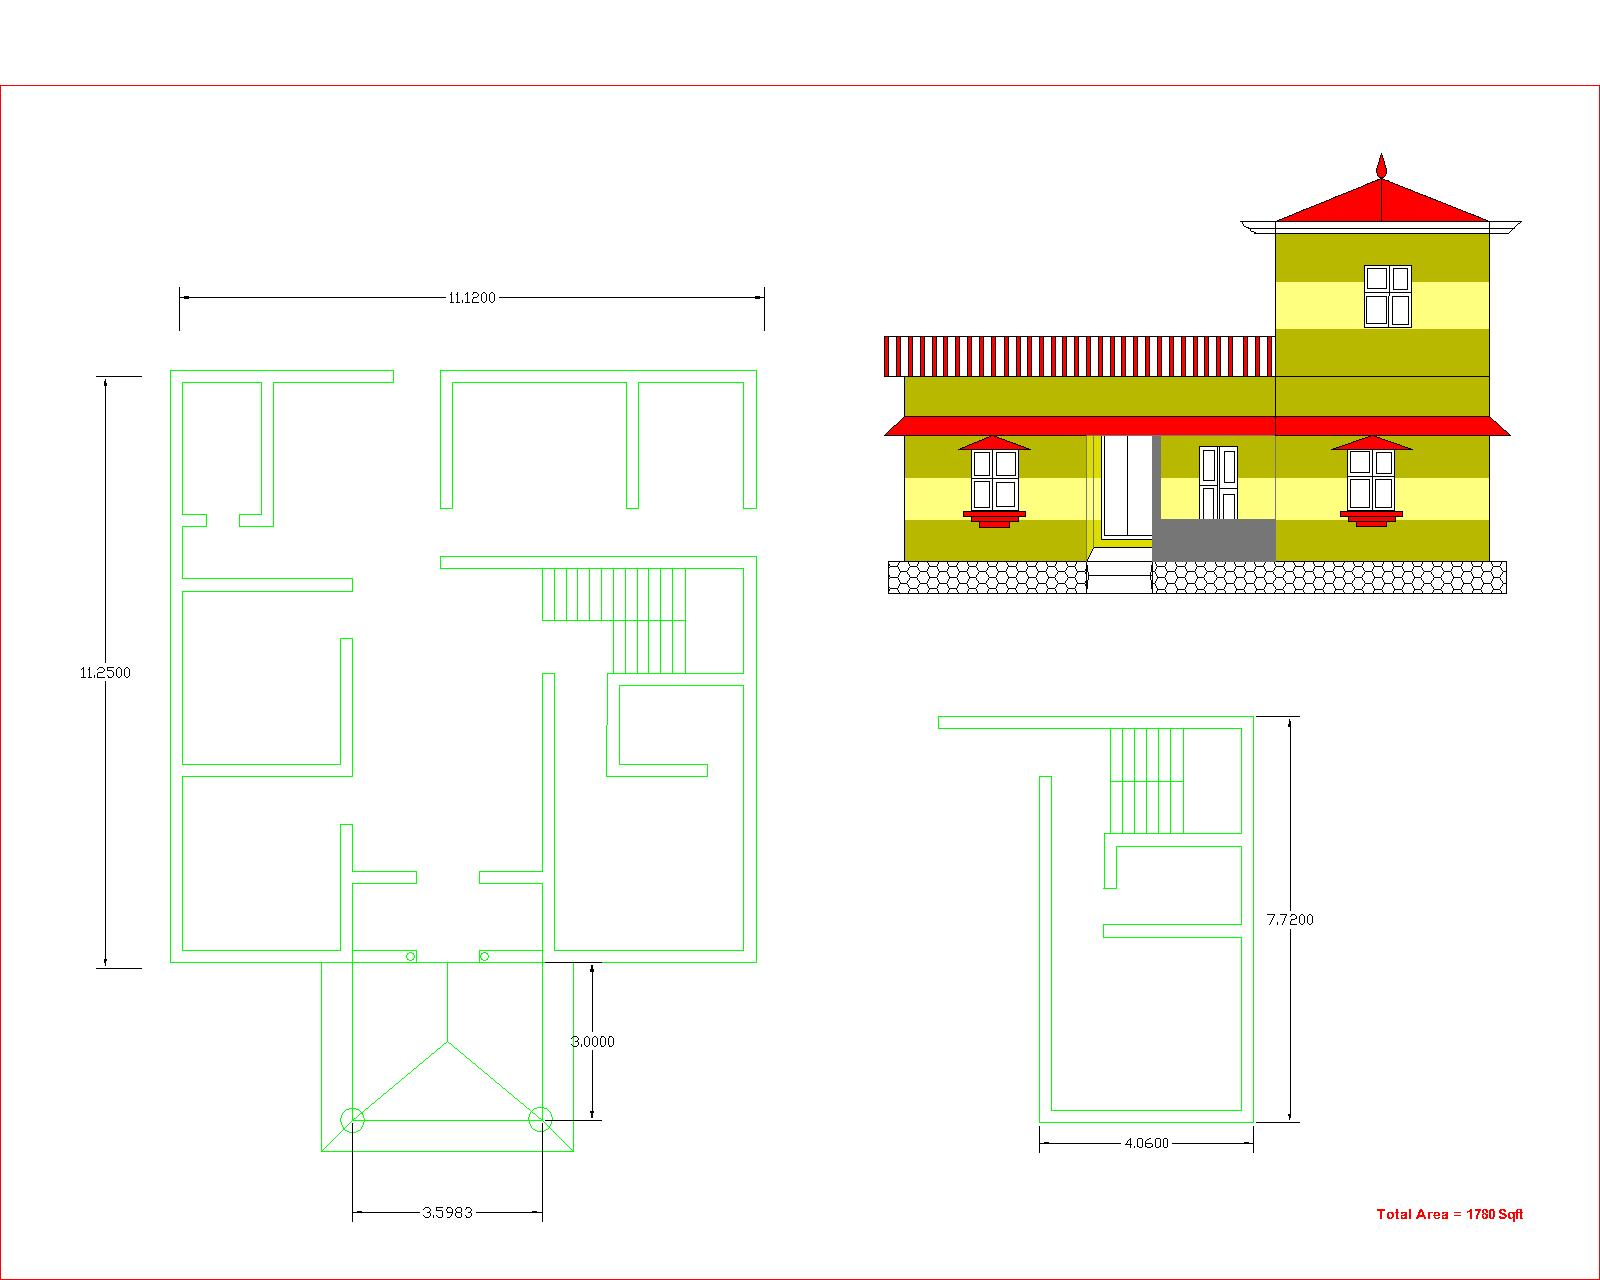 Ente veedu ente veedu house plan 12227 for Veedu plans and elevations